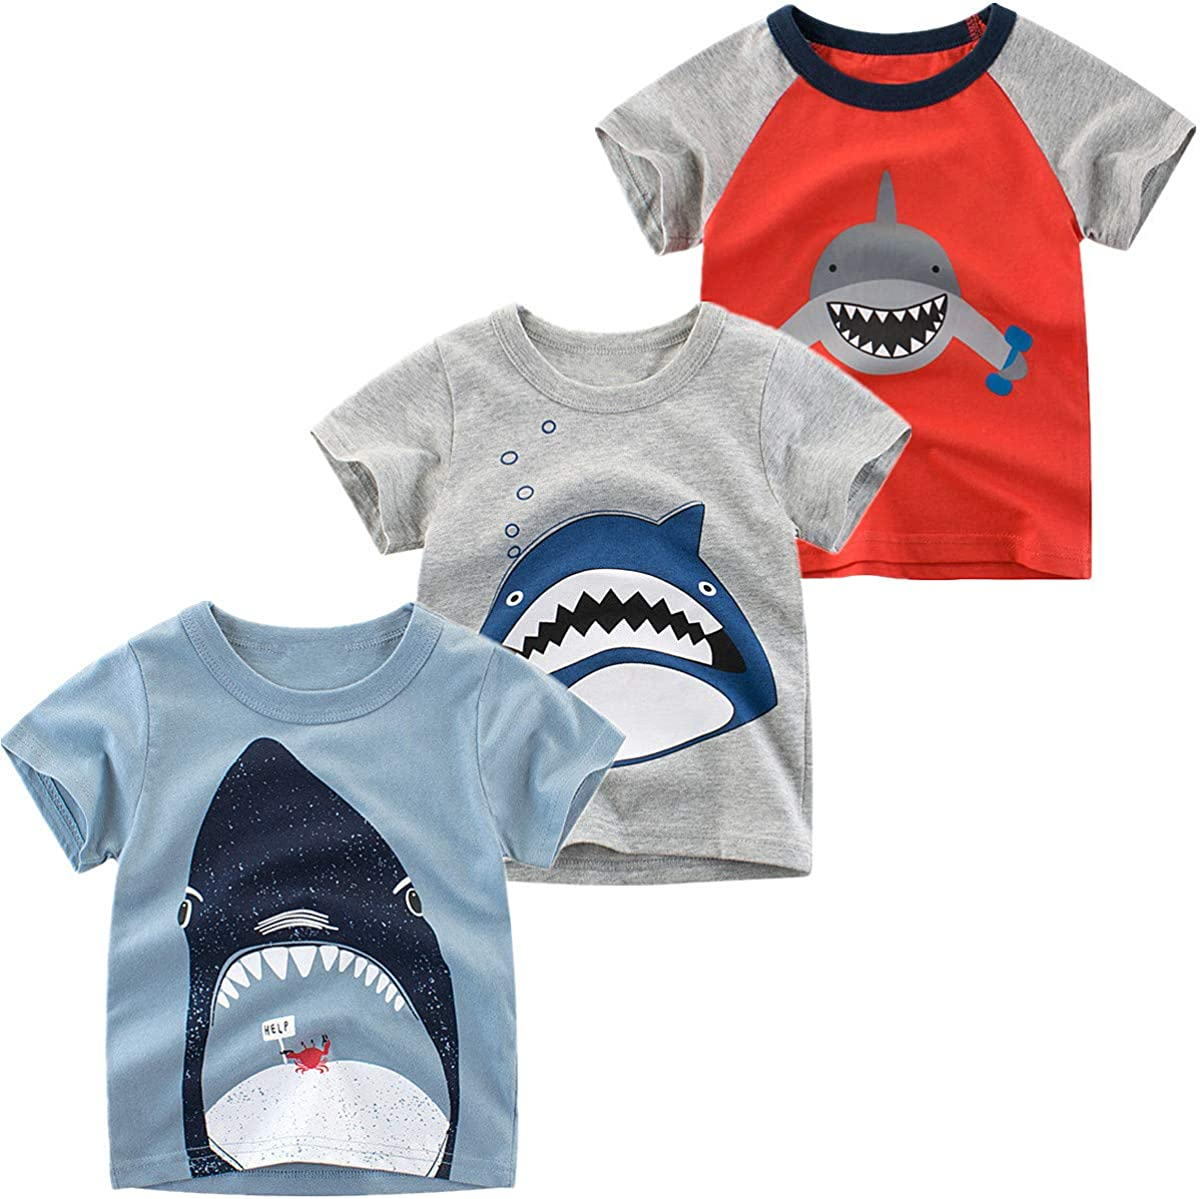 Nuziku Boys' 3-Pack Dinosaur Short Sleeve Crewneck T-Shirts Top Tee Size 2-6 Years